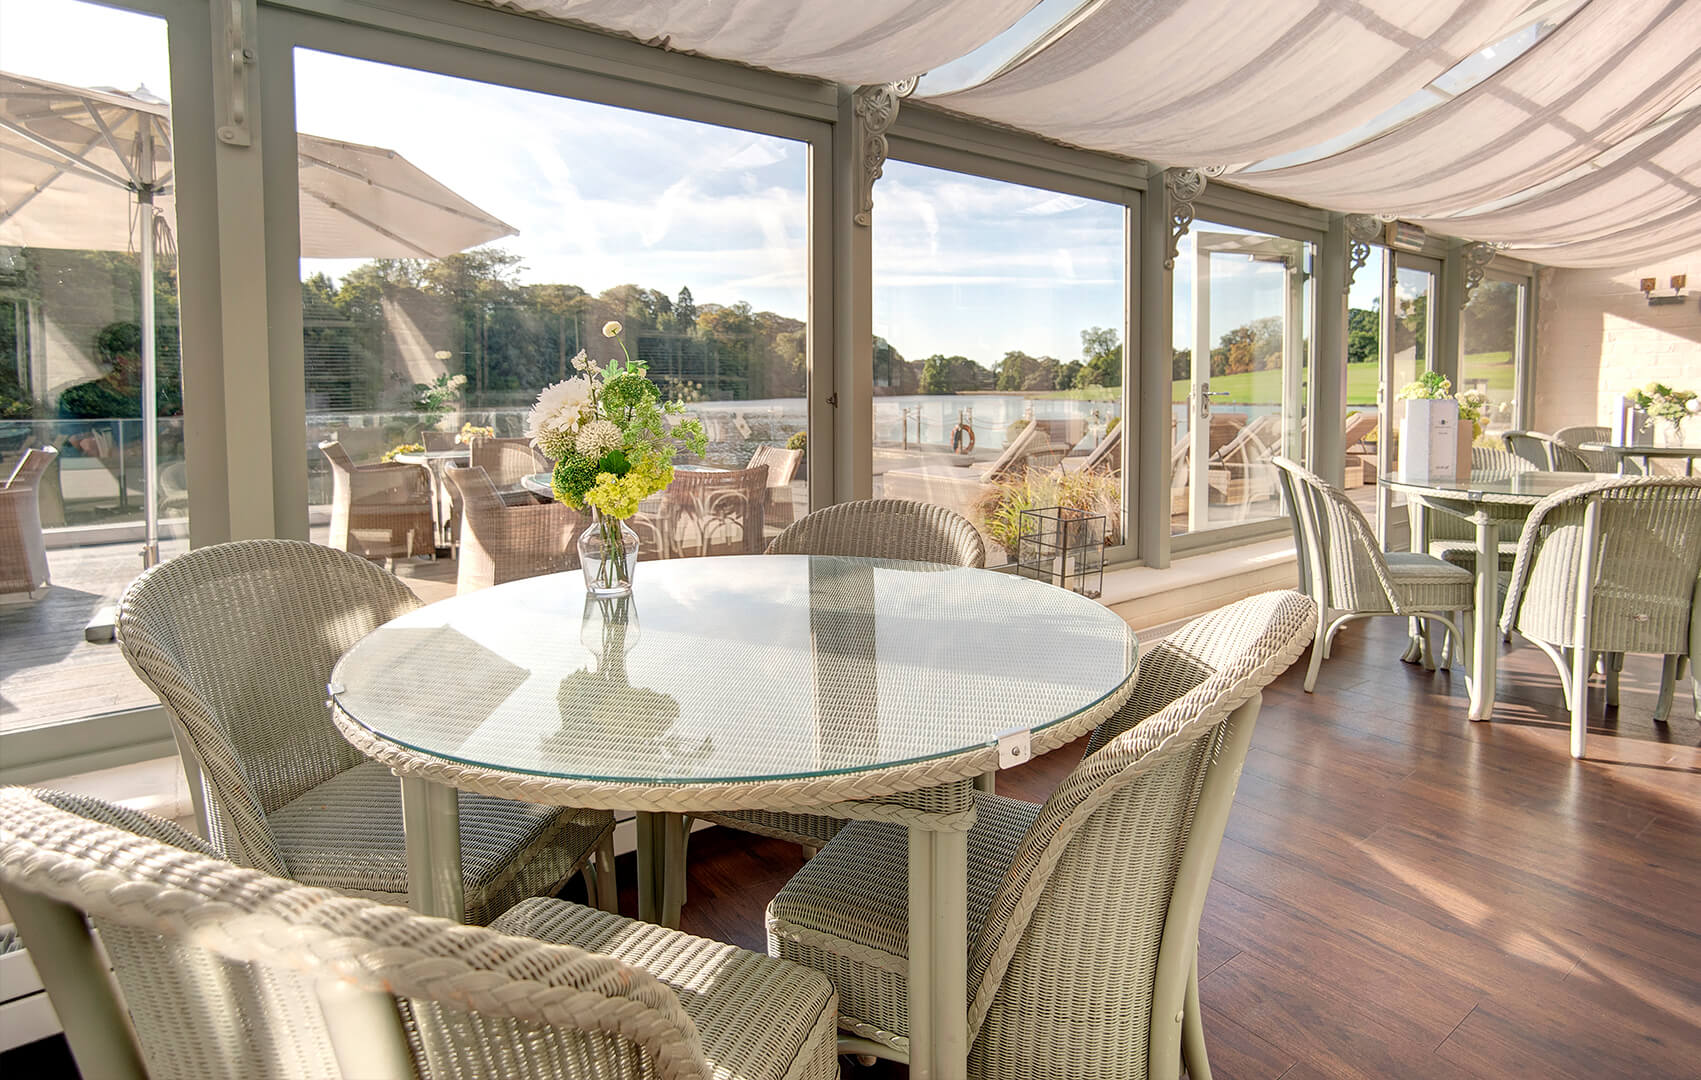 <p>Refreshments are available including Afternoon Tea, healthy salads, sandwiches and soups, as well as chilled wine or fizz, refreshing juices, hot teas and freshly brewed coffees.</p>